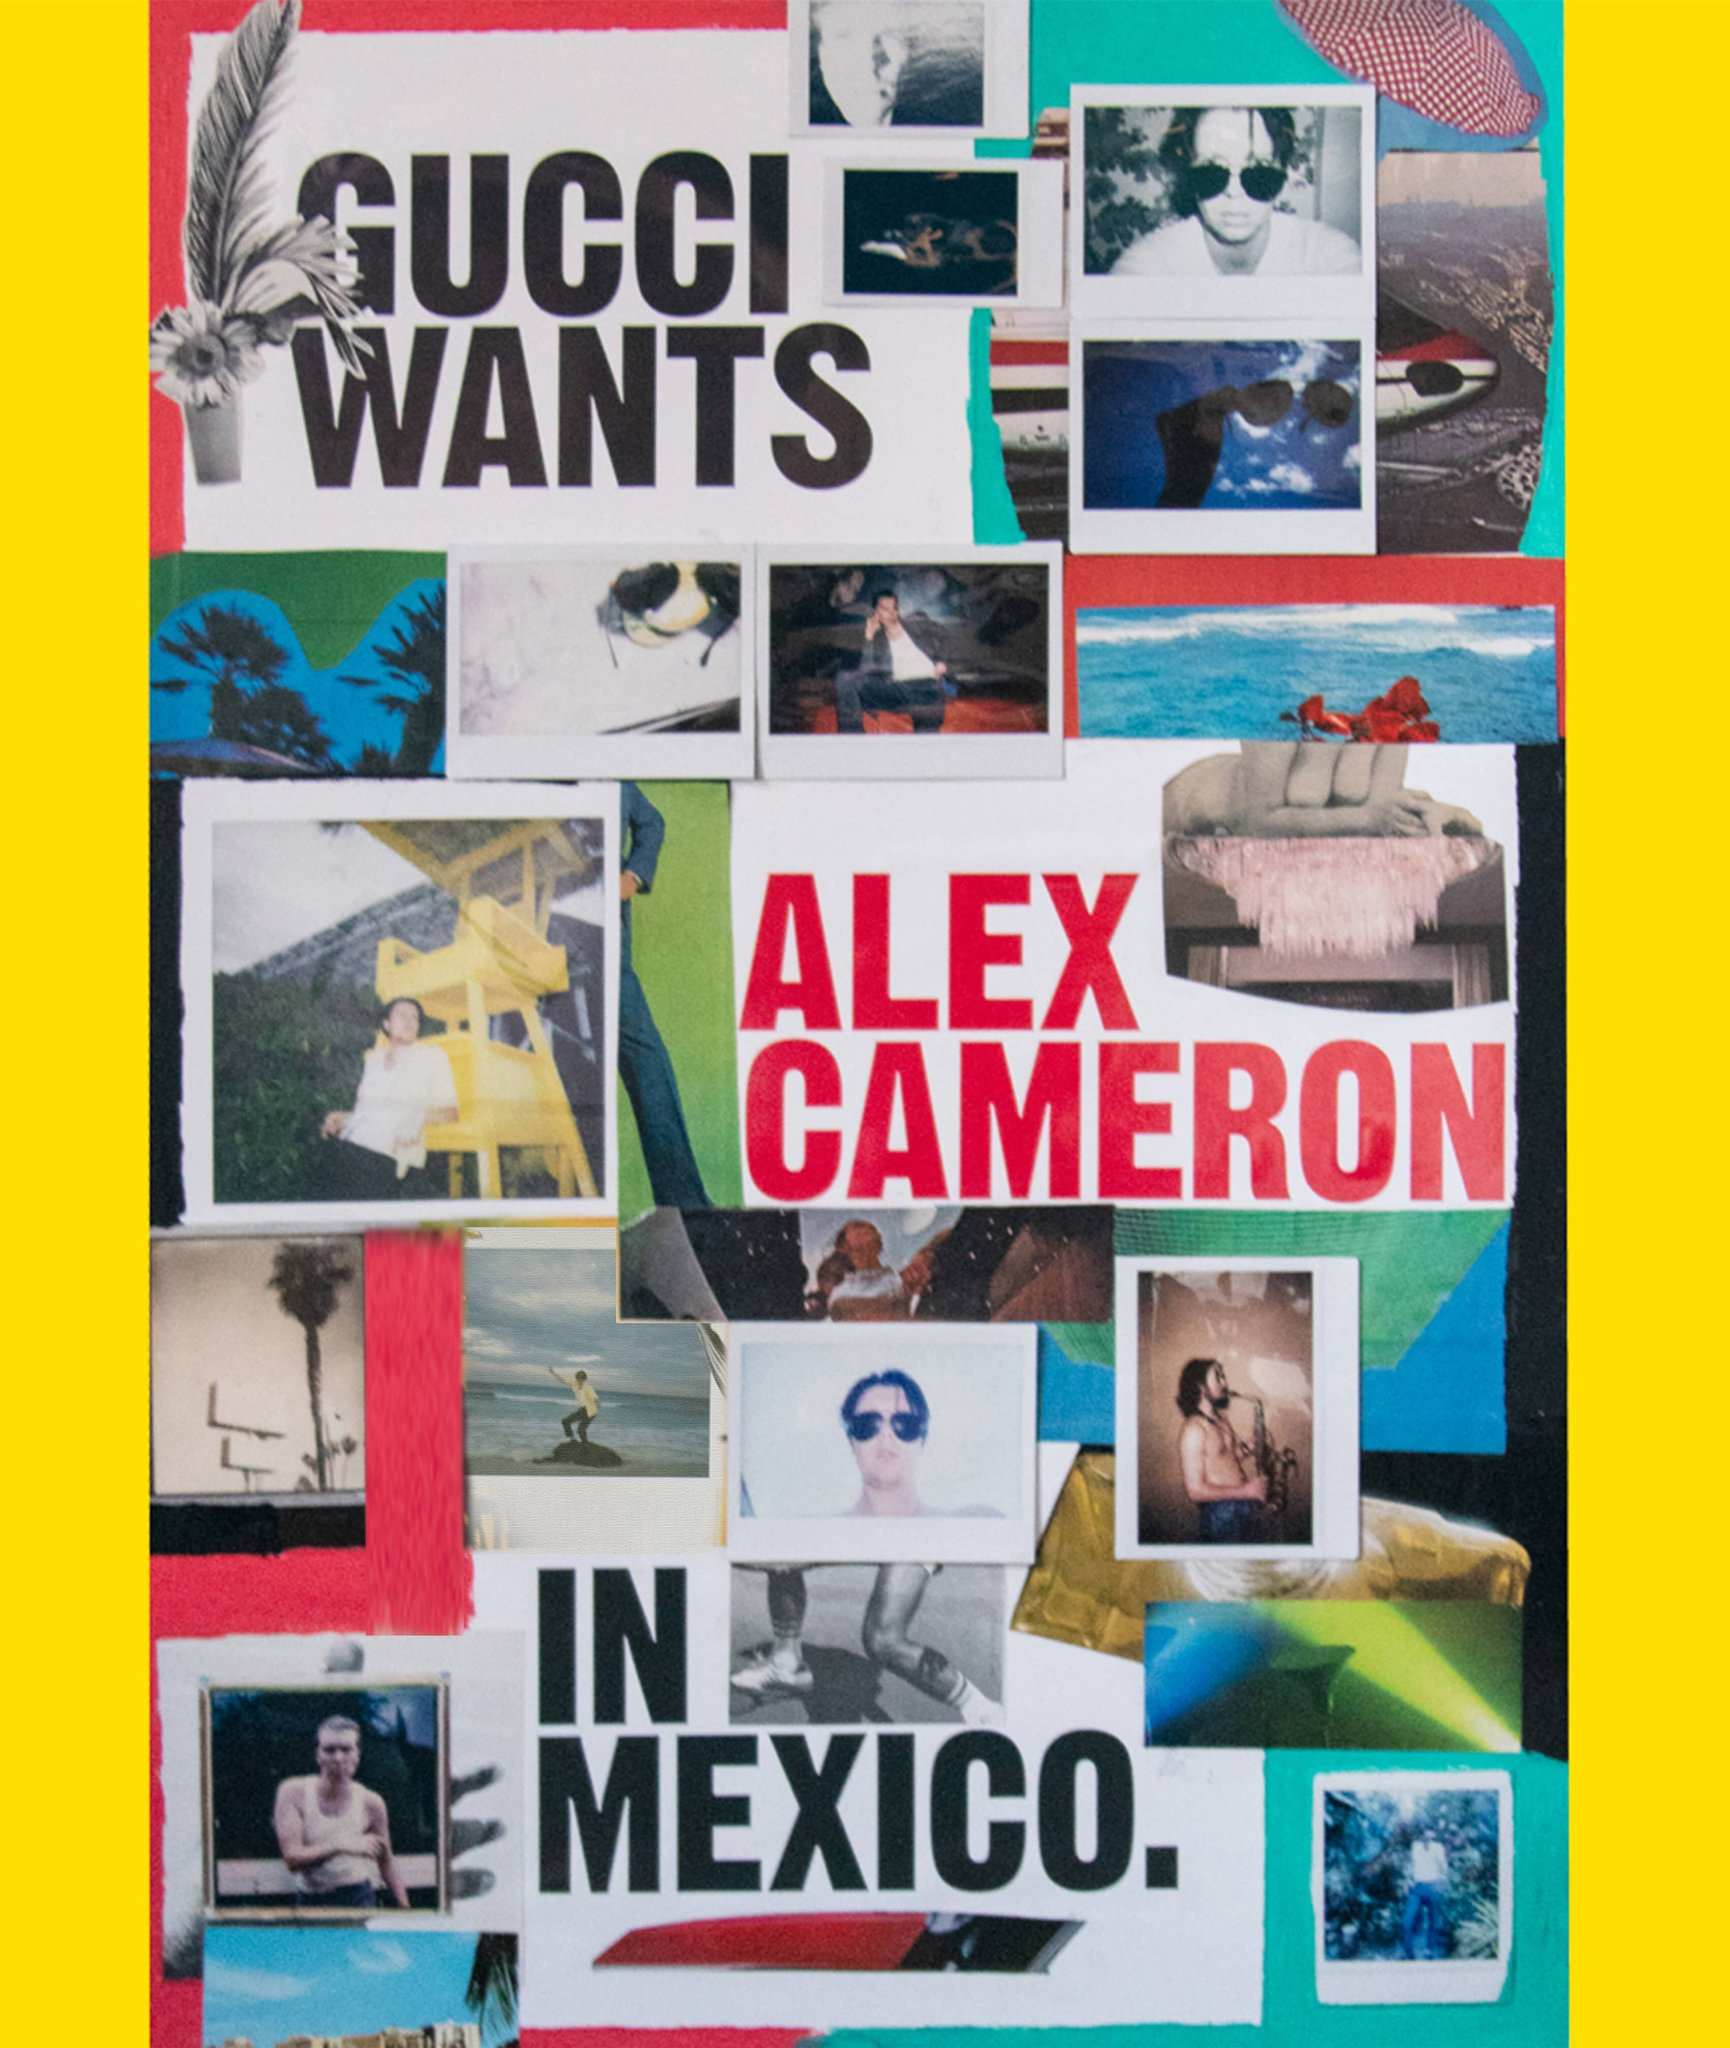 Australian singer-songwriter Alex Cameron @ALKCM worked with actress and artist @jemimakirke to create imaginary fan posters begging Alex to tour Mexico for #GucciGig, featuring #GucciEyewear's distinct 70s style aviator sunglasses. https://t.co/wQqJfdNVnO